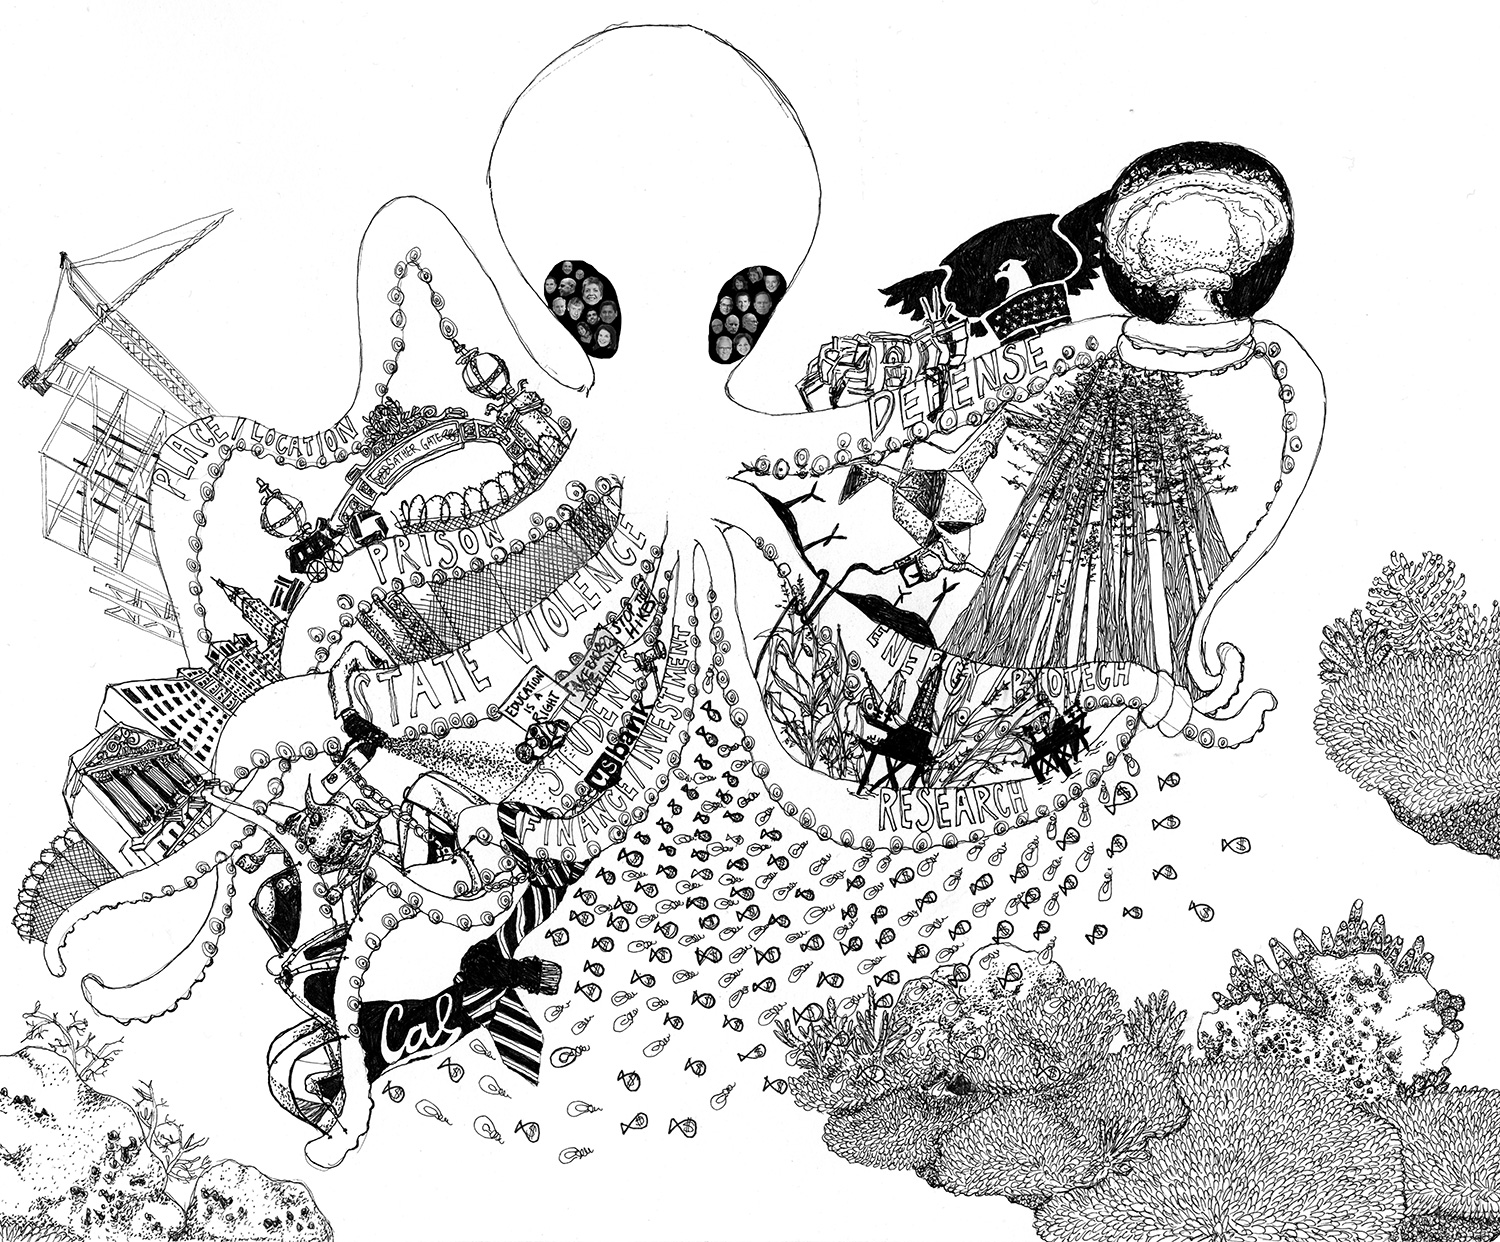 The Octopus, drawing by Nicci Yin